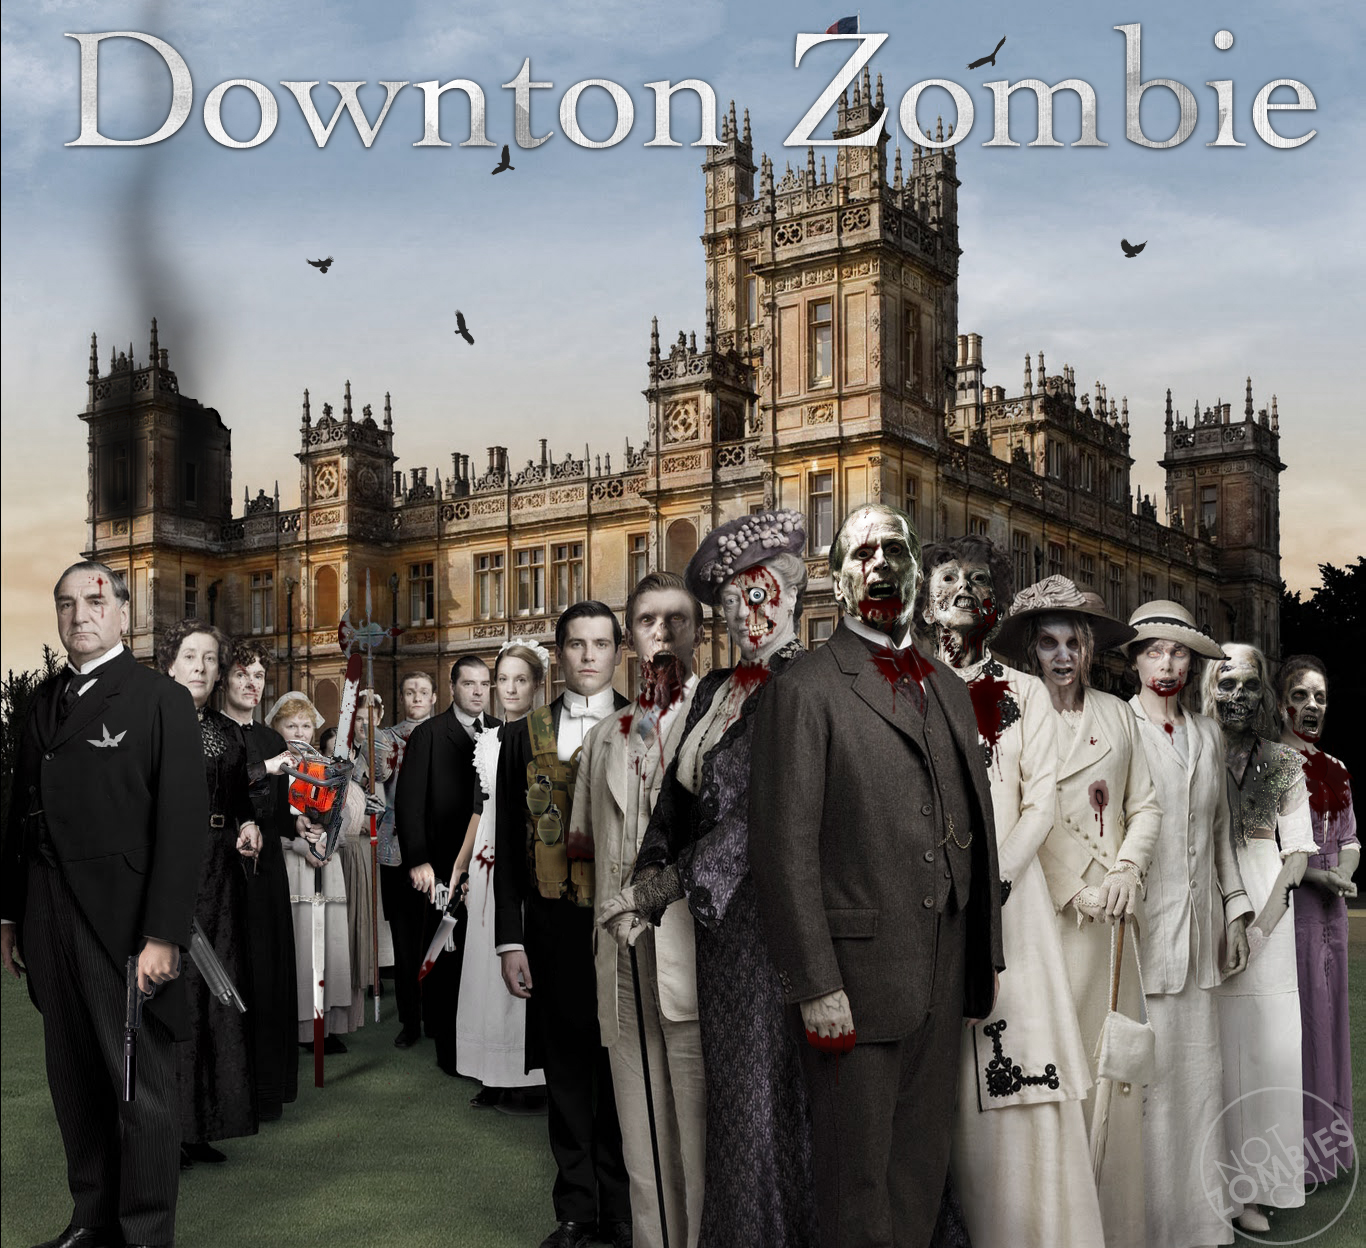 downton abbey zombies